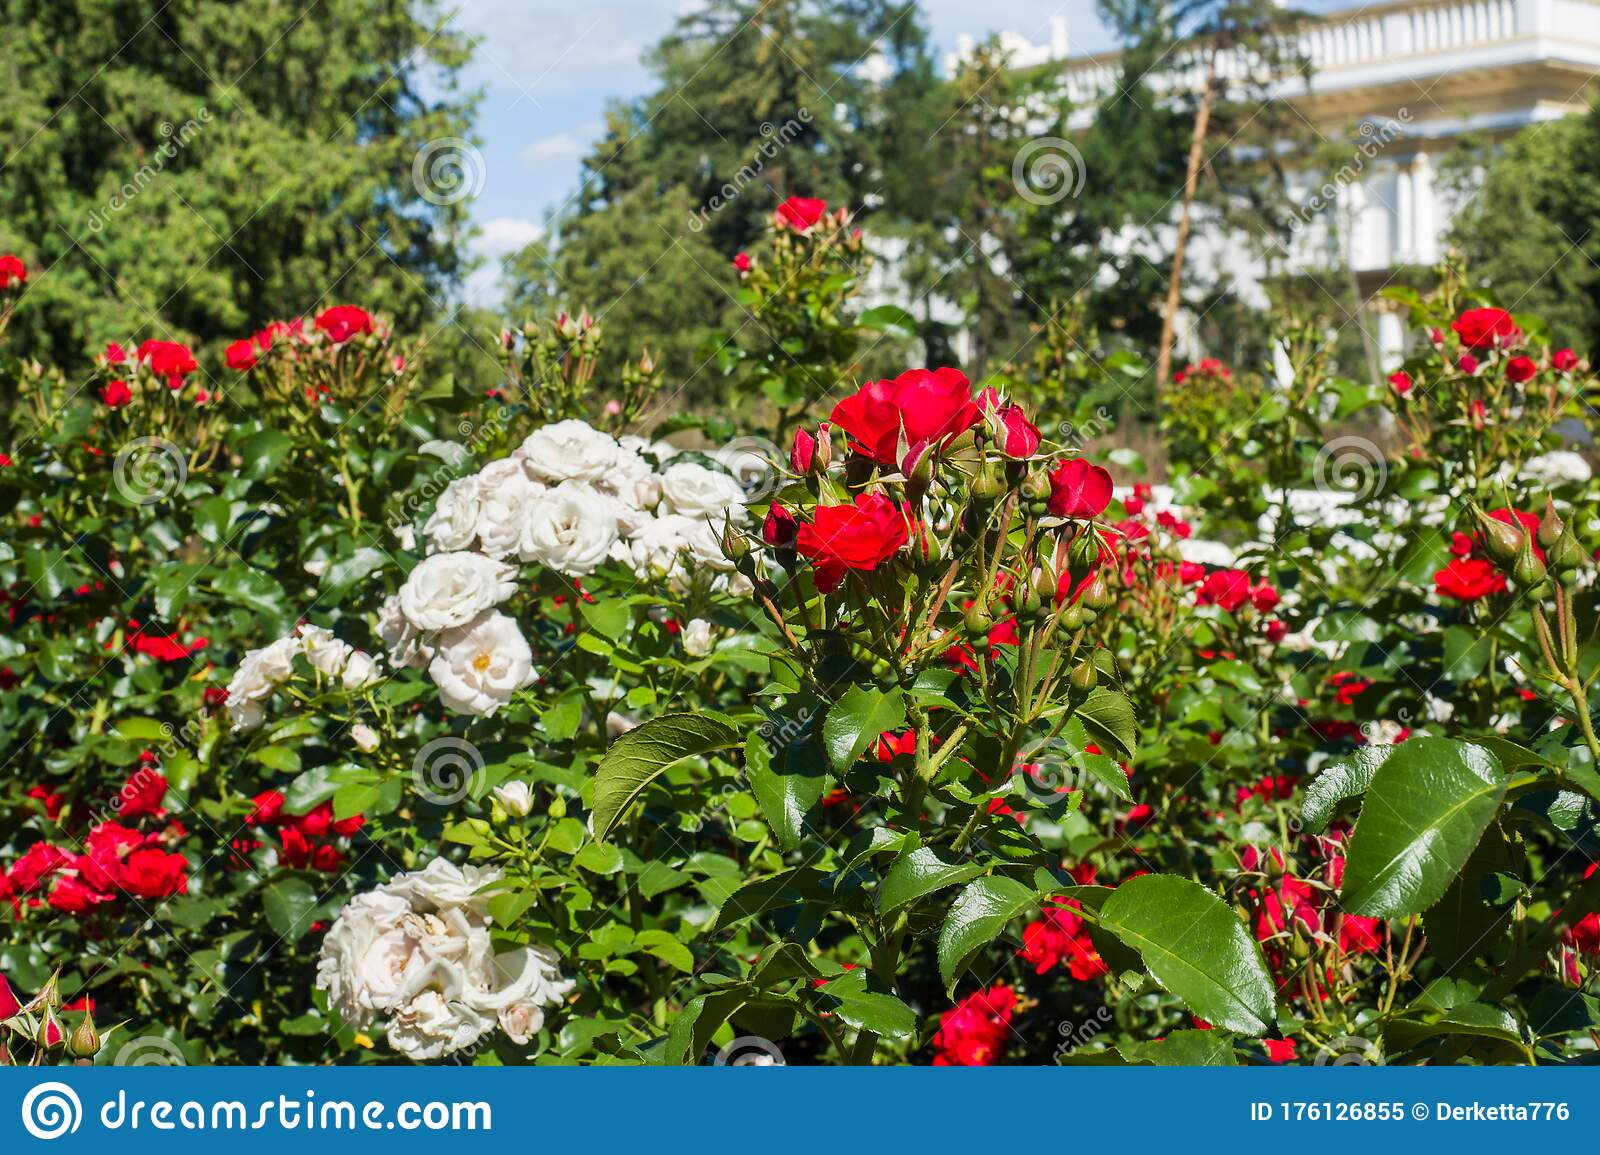 Flowering Rose Bushes In The Summer Garden Stock Image Image Of